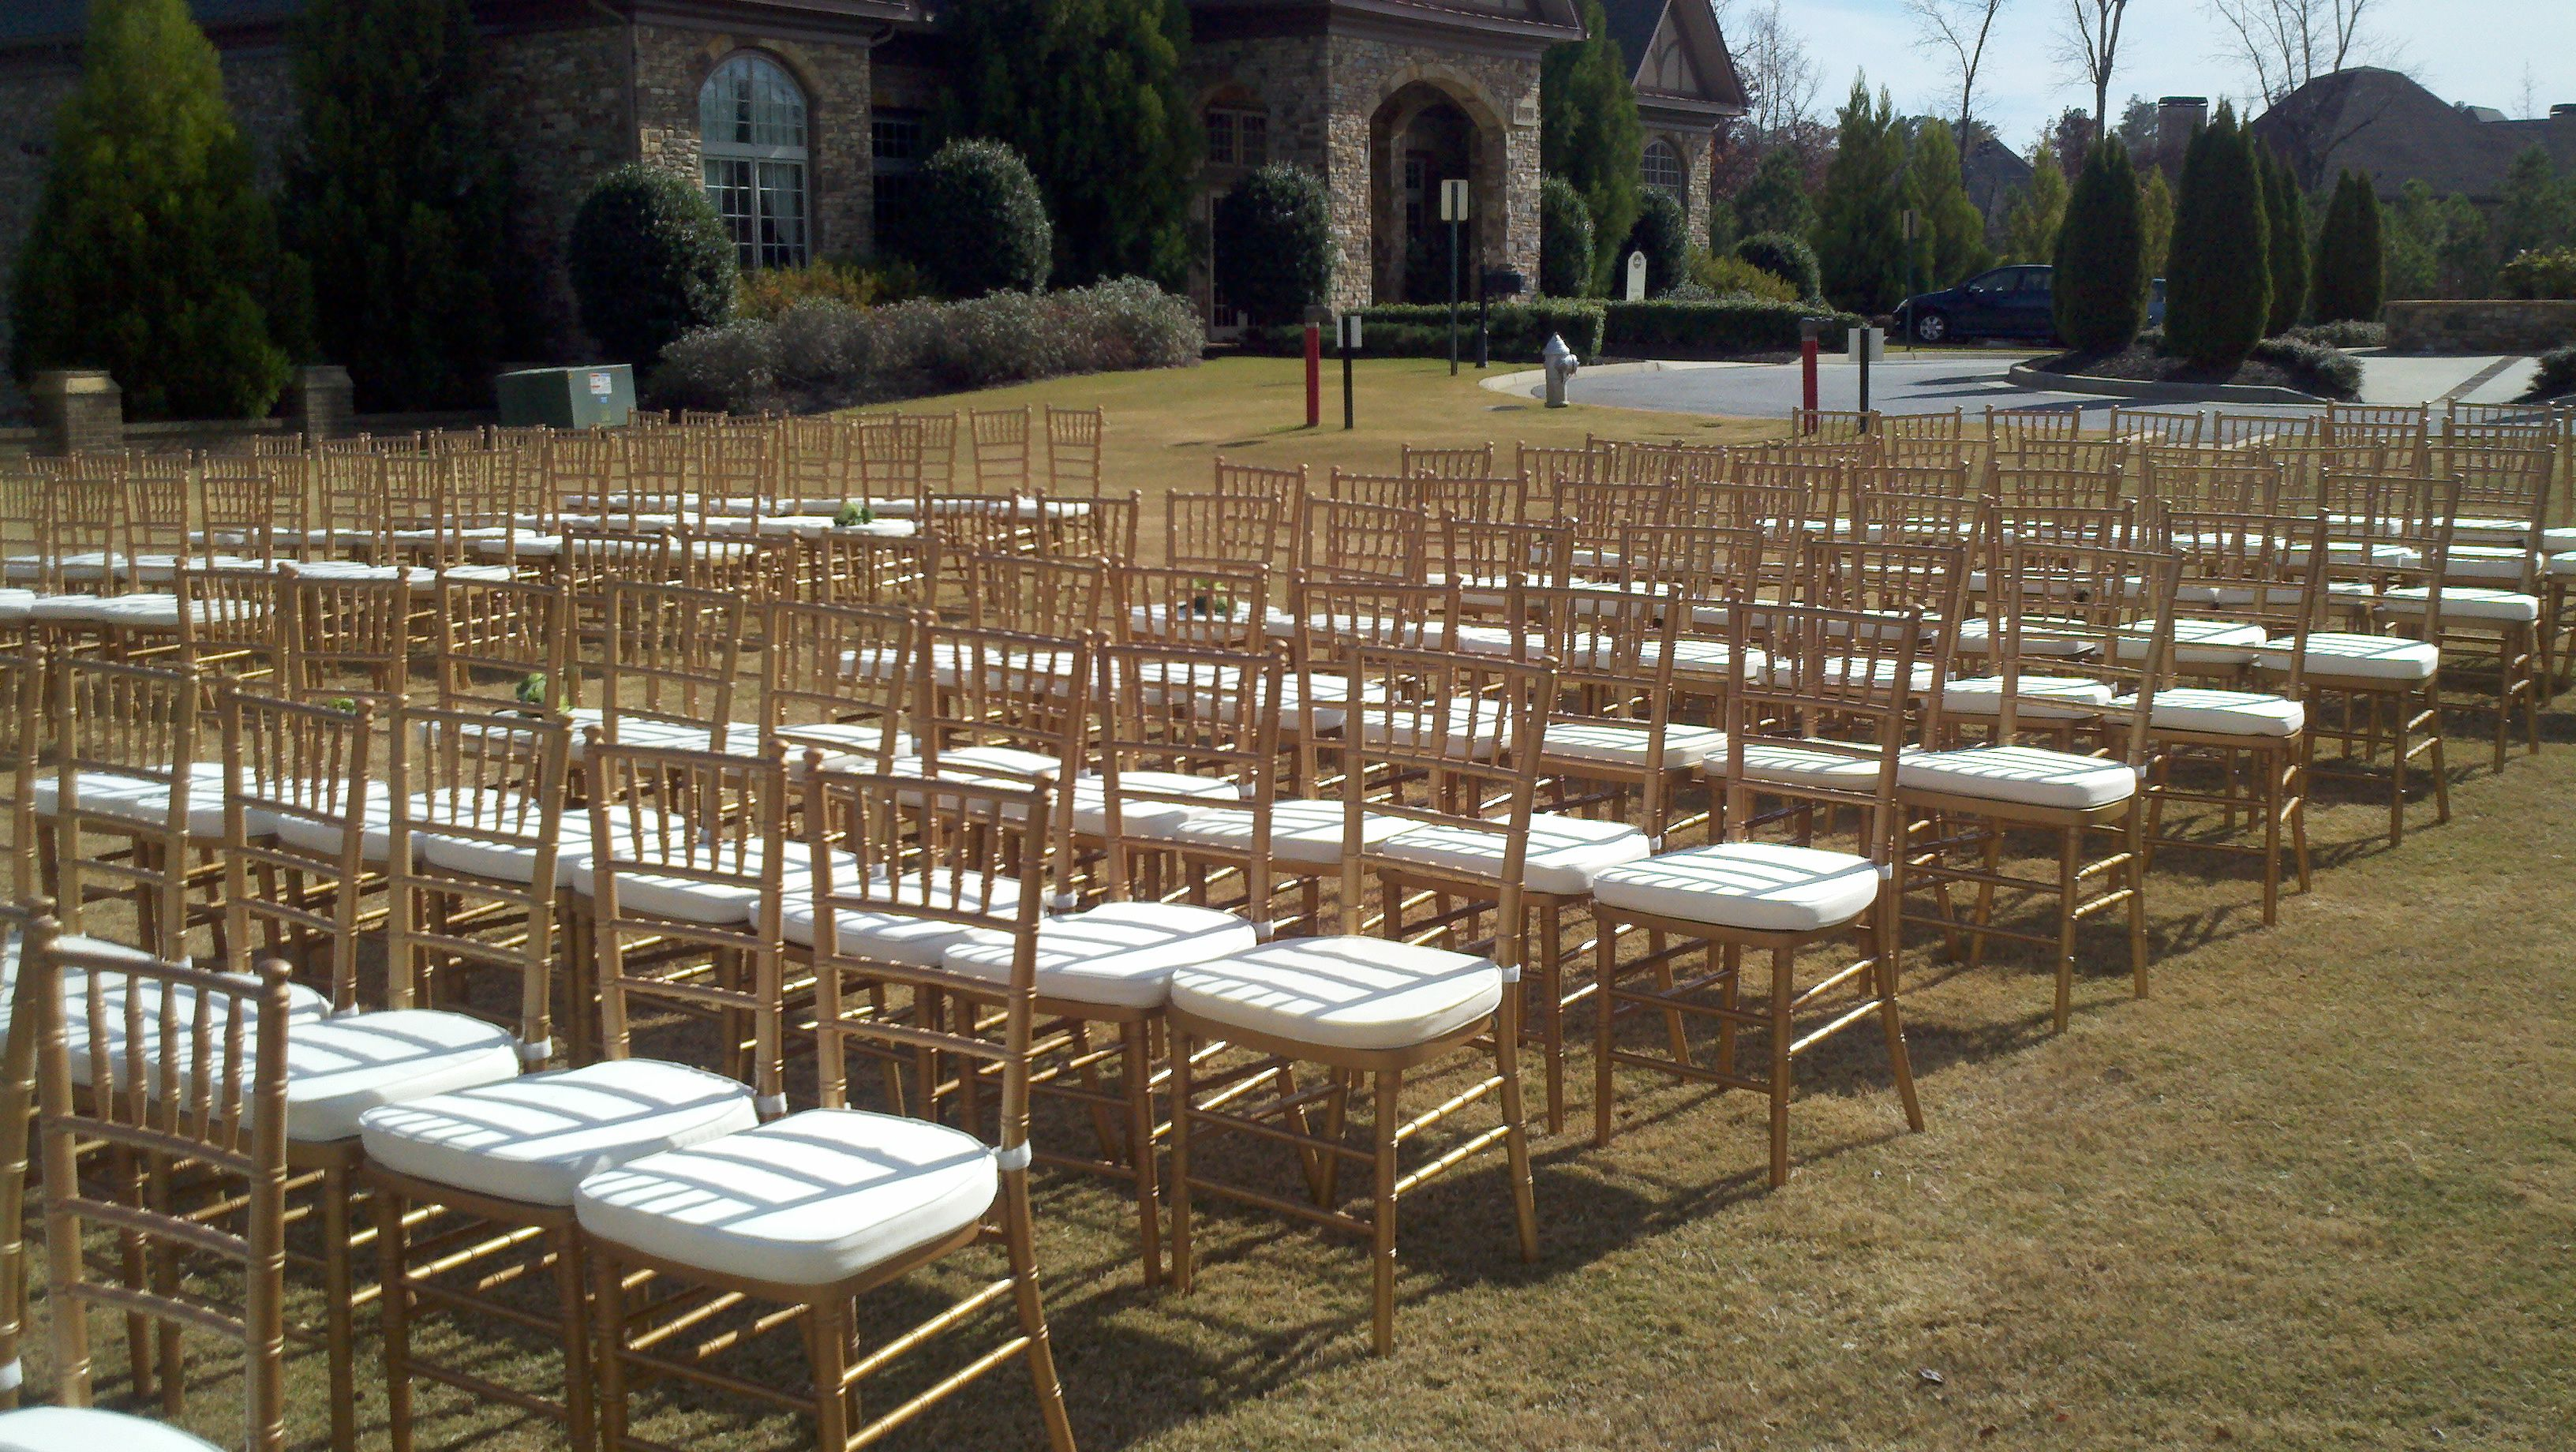 Sweet Seats Chiavari Chairs And Chair Covers Atlanta Outdoor Furniture Sets Gold Chiavari Chairs Outdoor Wedding Ceremony